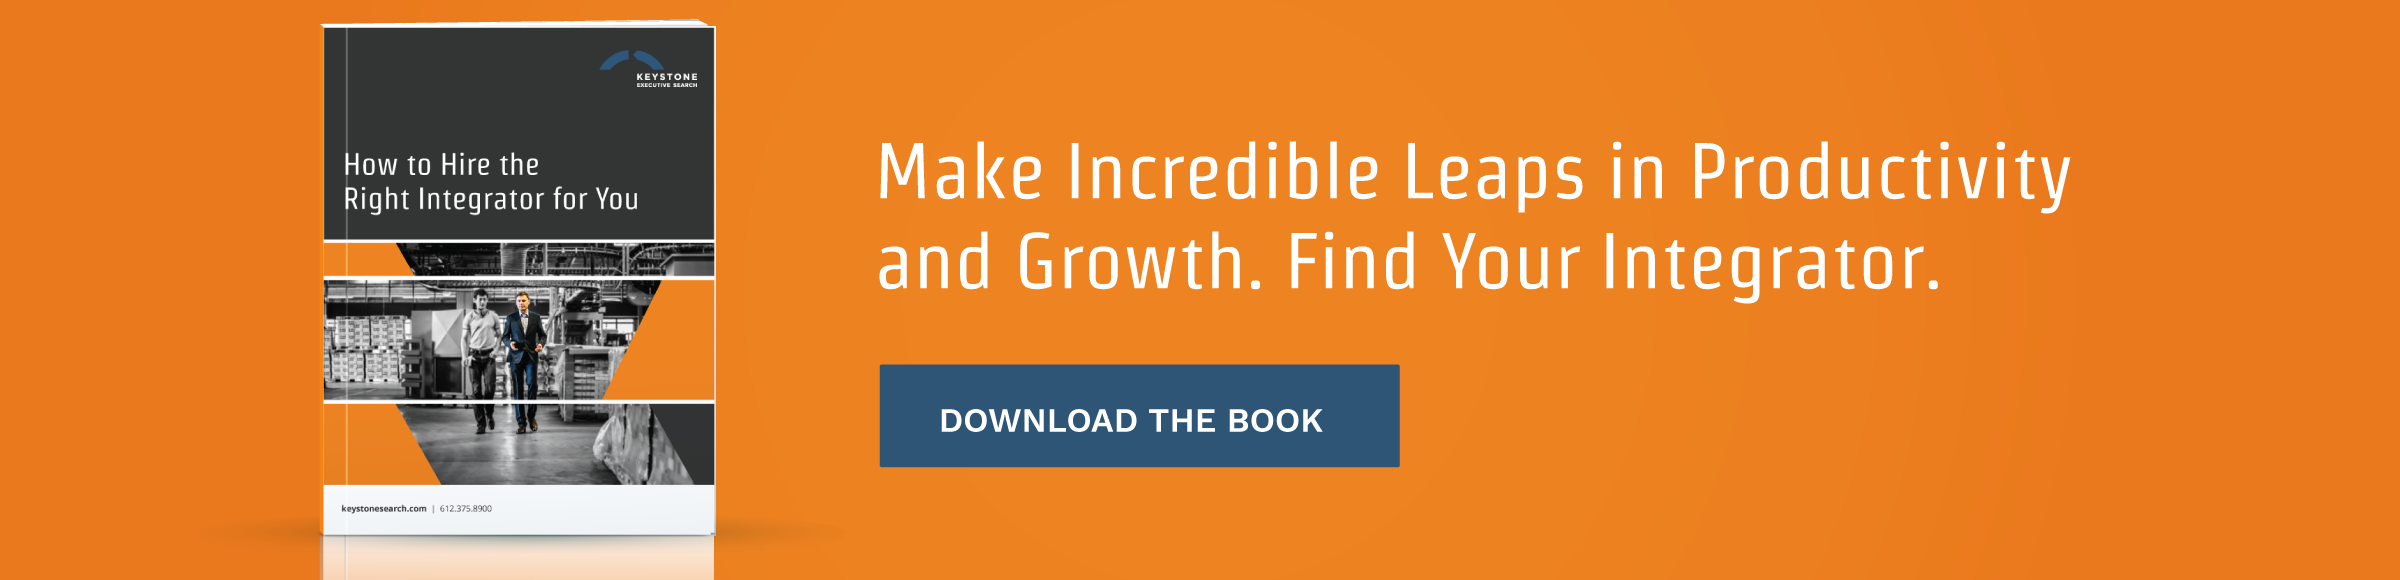 Make incredible leaps in productivity and growth. Find your integrator.